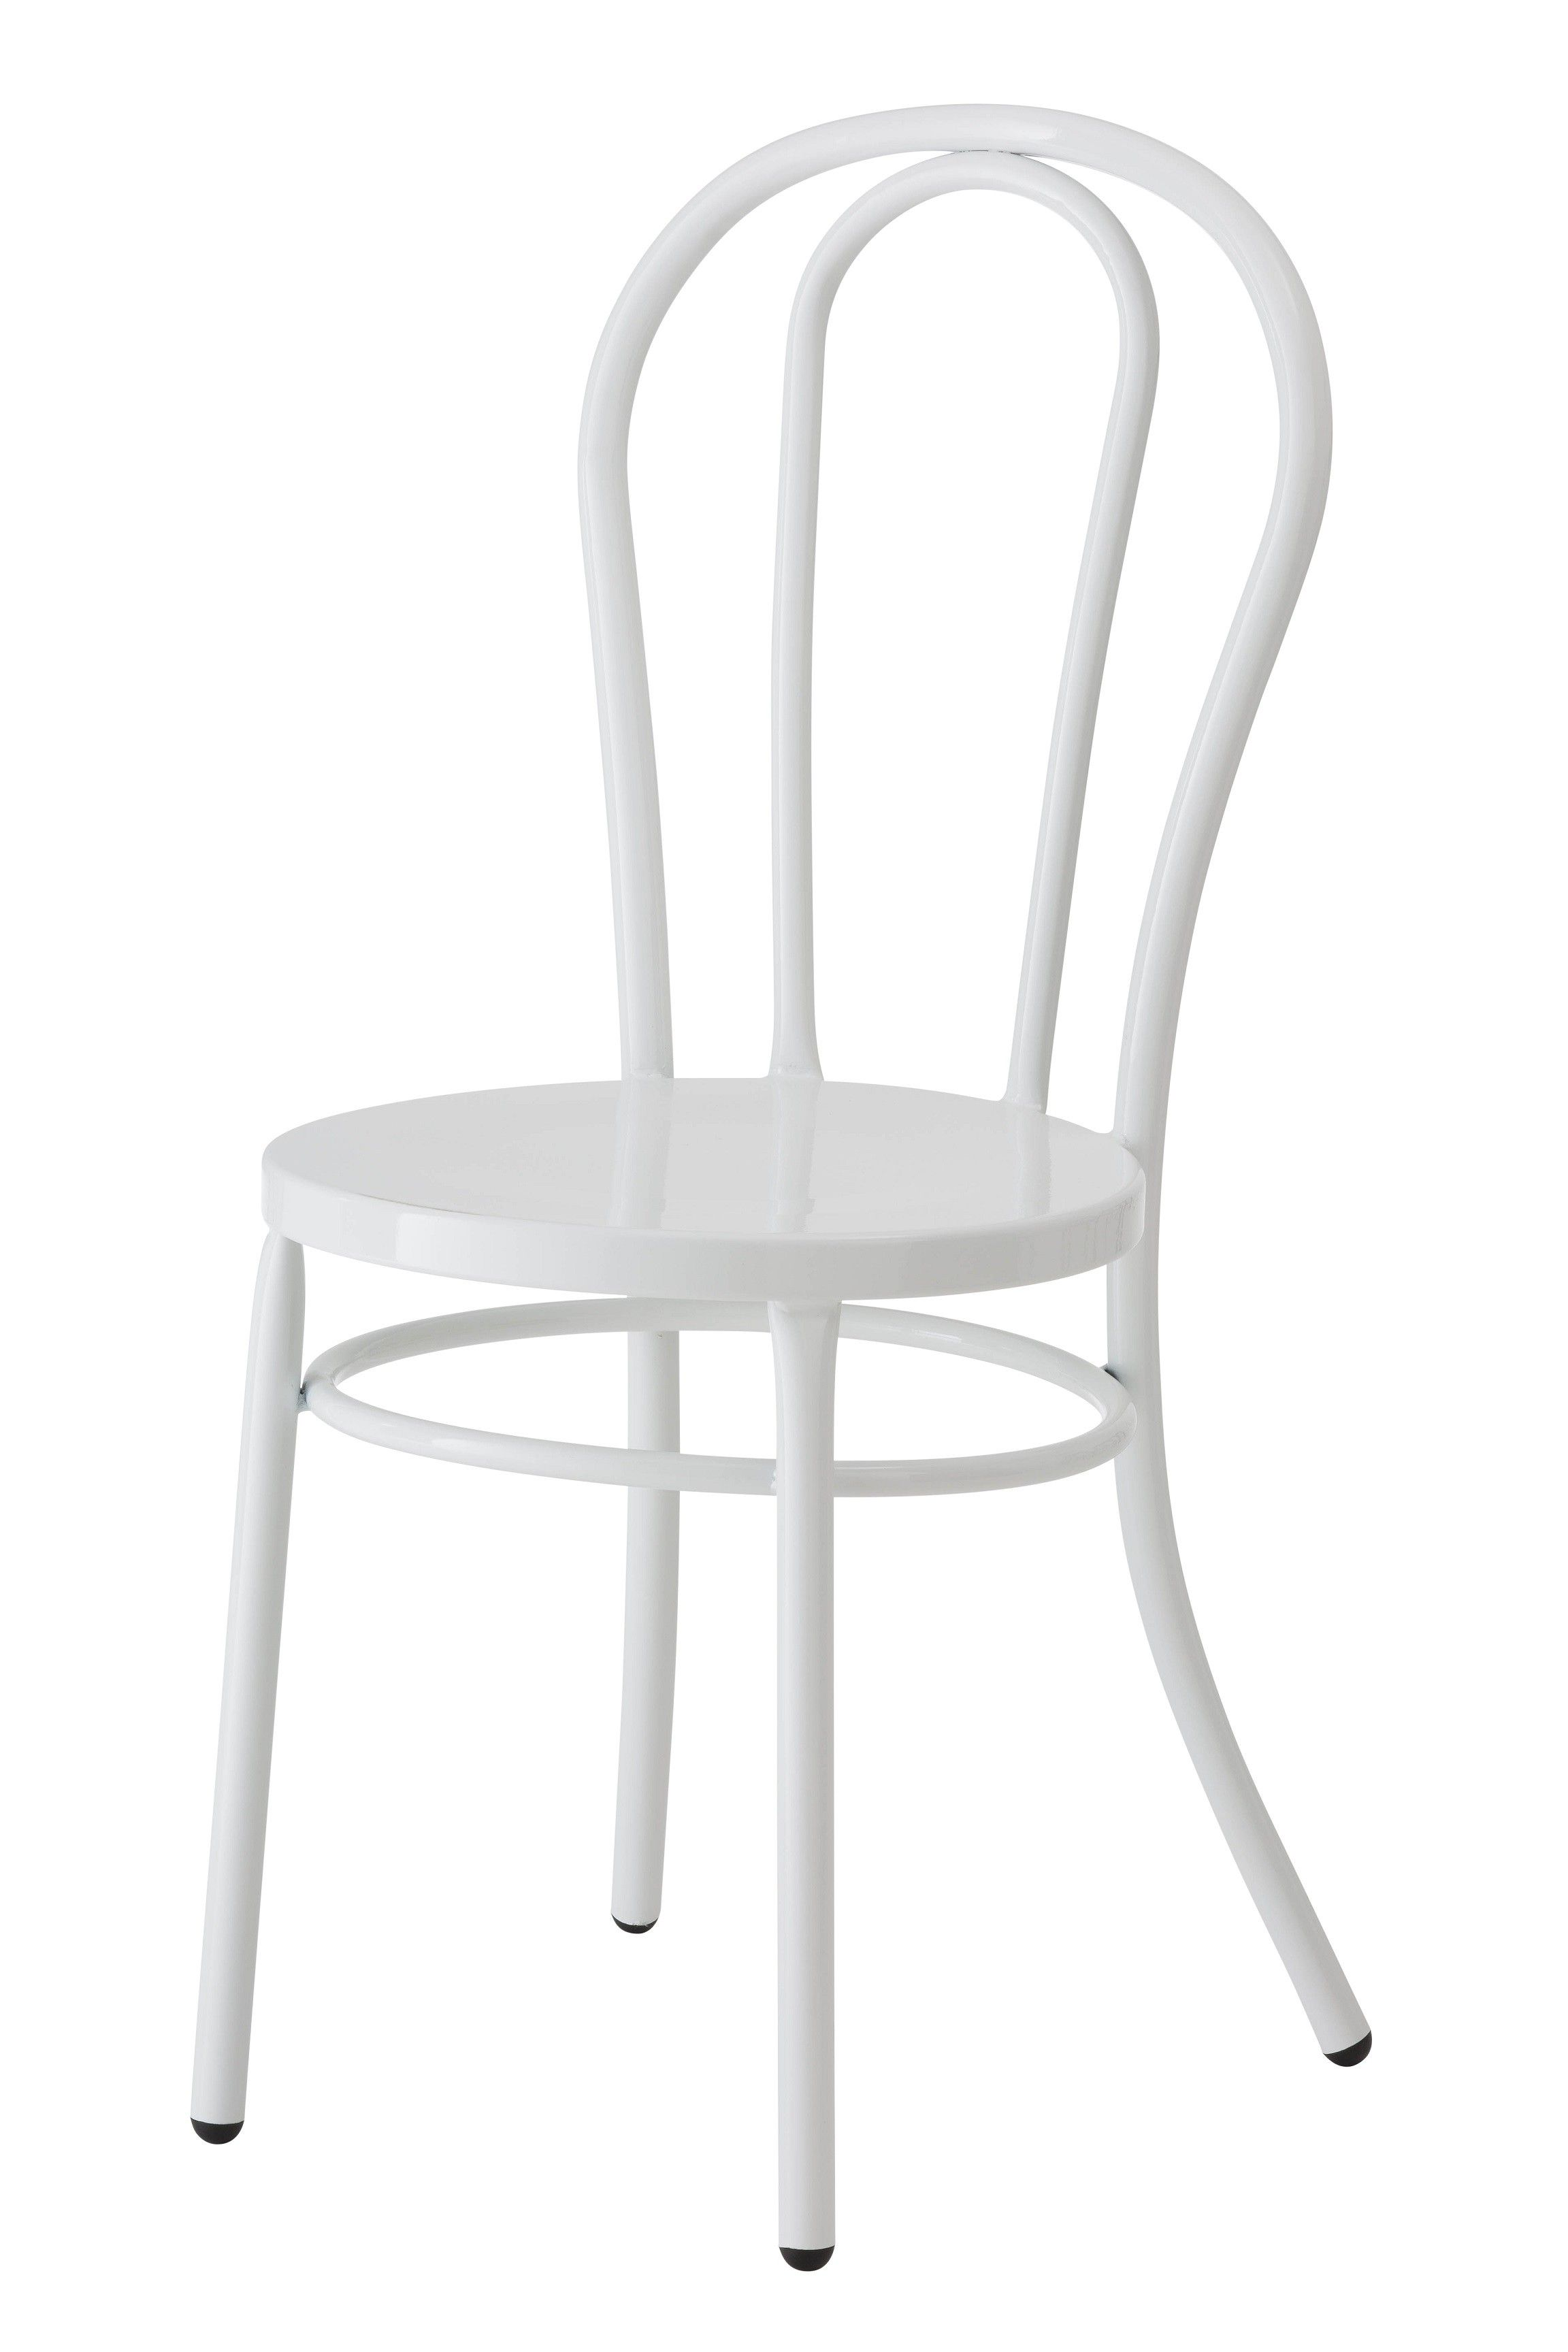 Marvelous The Paris Bentwood Steel Chair Is A High Quality Antique Reproduction Of  The Famous European Designed Bentwood Chairs.